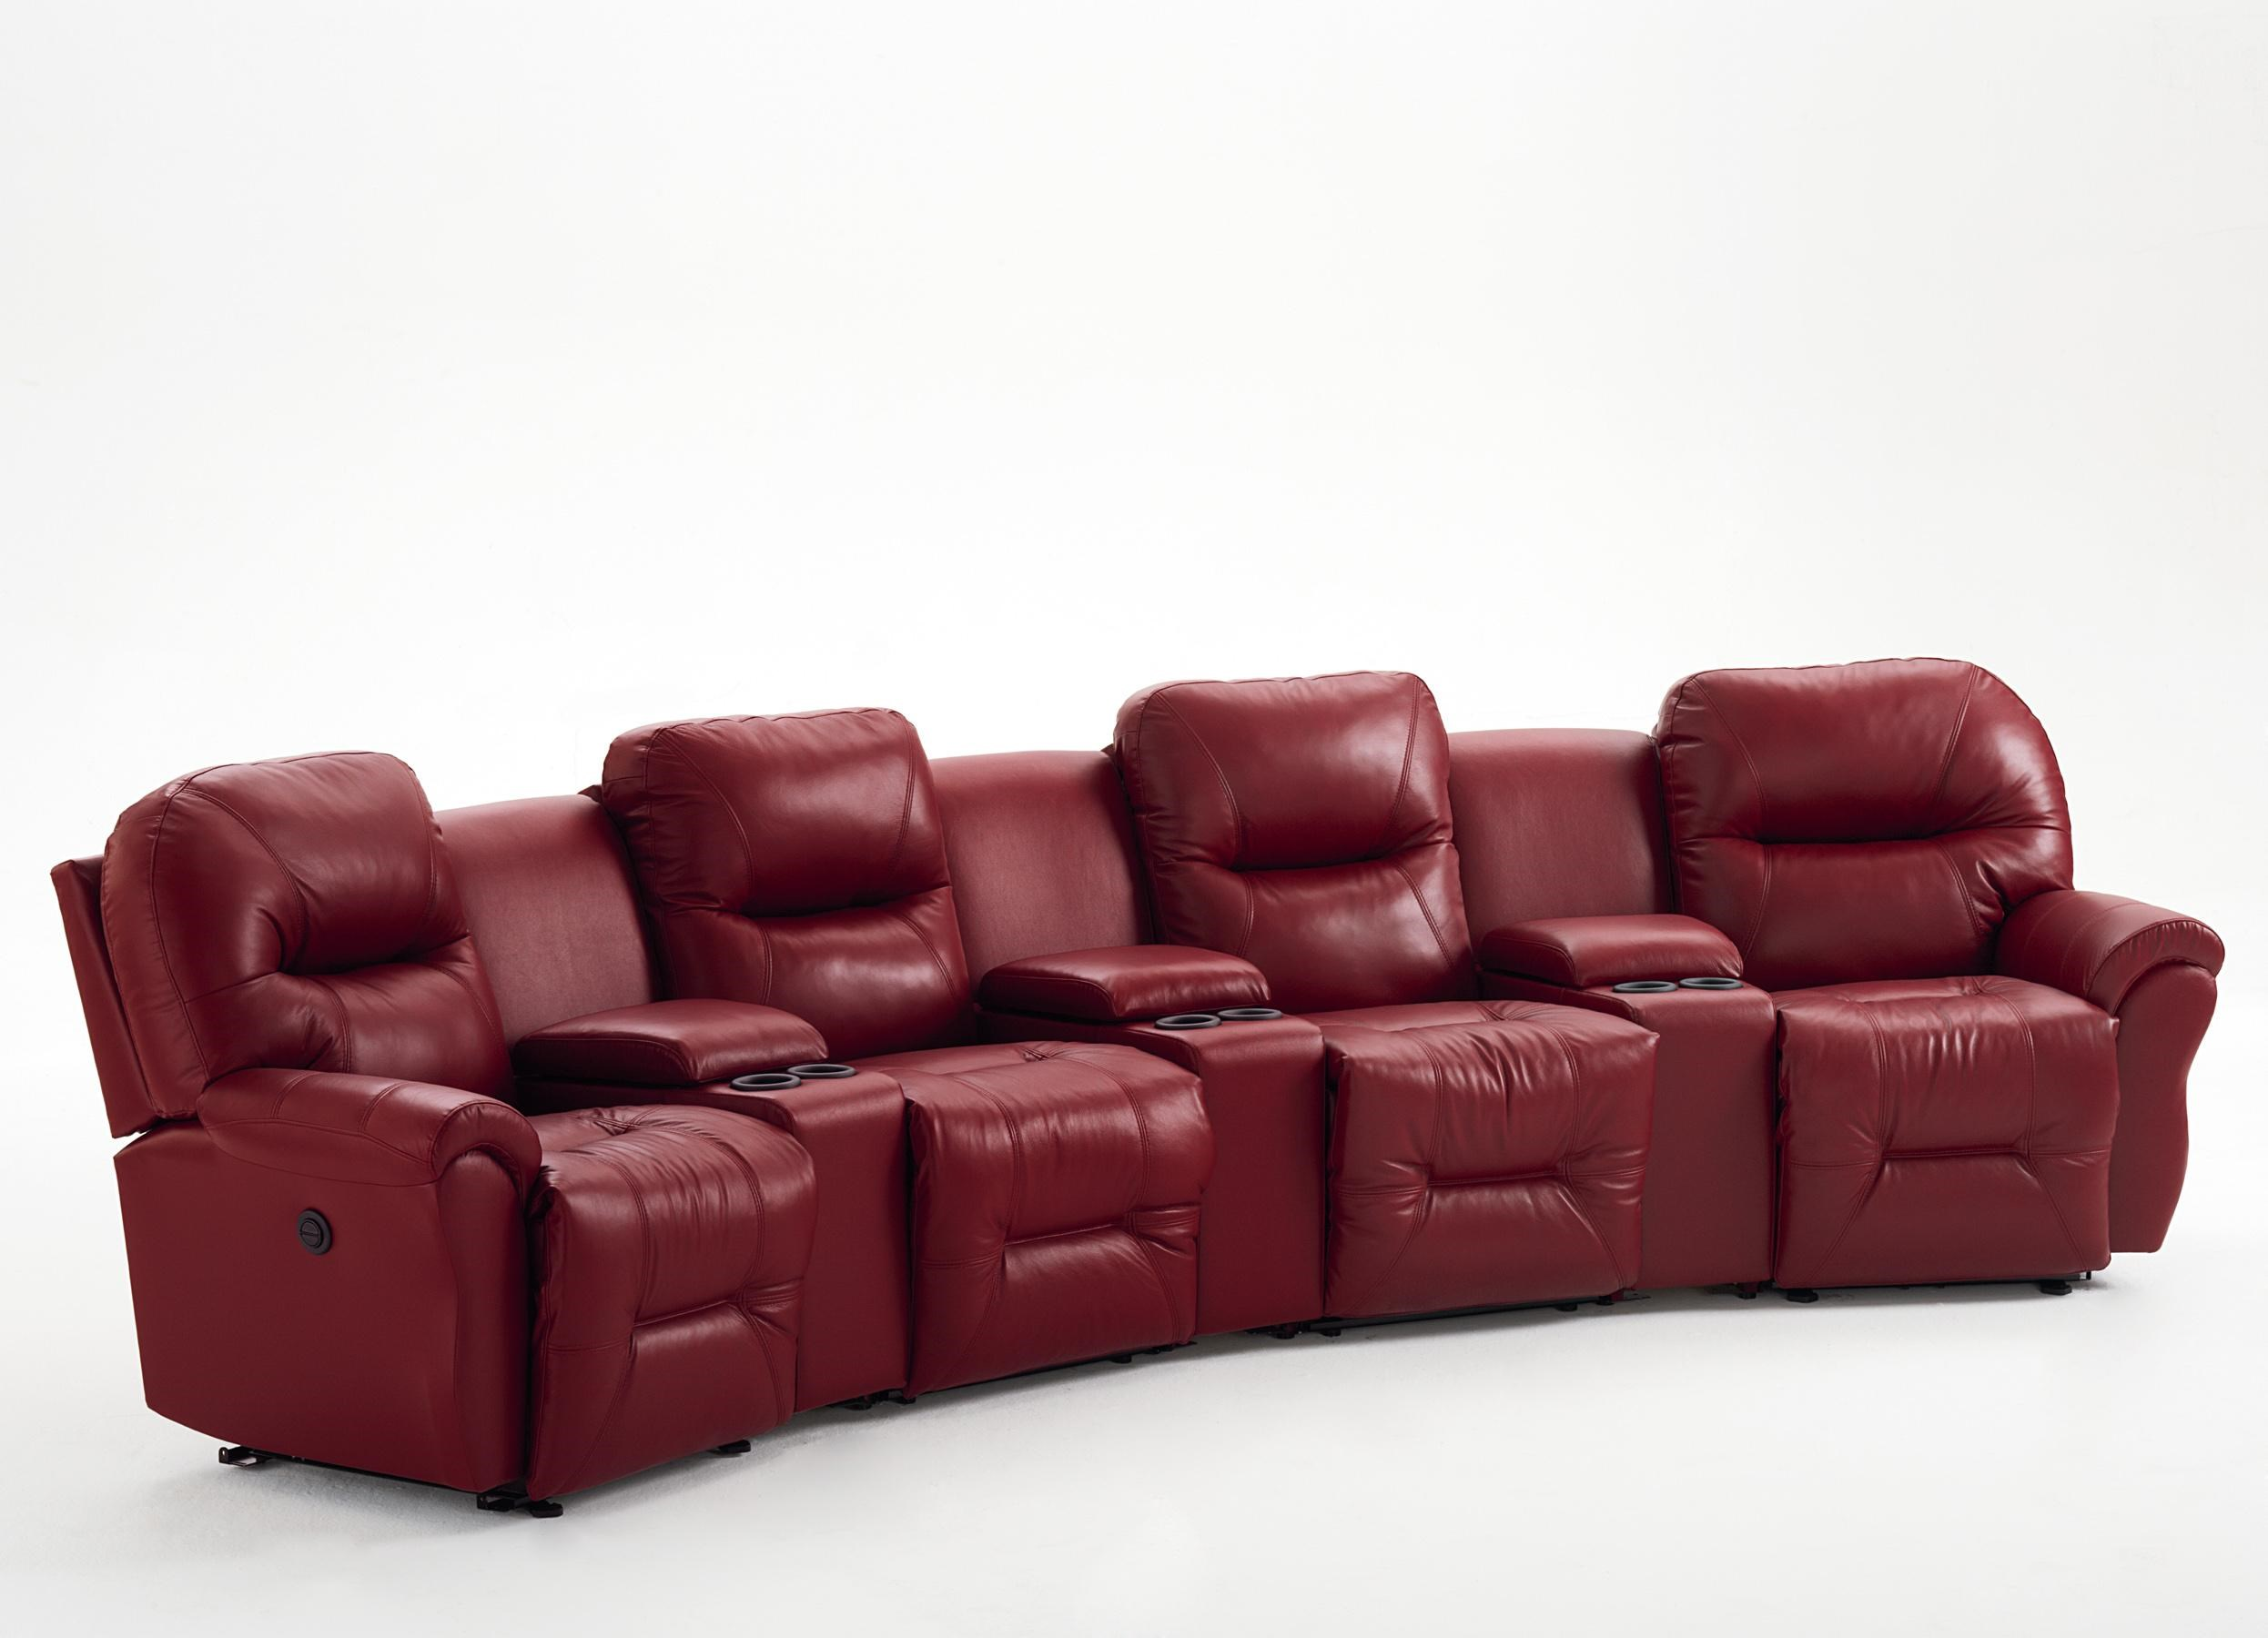 Best Home Furnishings Bodie 4-Seater Power Reclining Home Theater Group  sc 1 st  Wayside Furniture & Best Home Furnishings Bodie 4-Seater Power Reclining Home Theater ... islam-shia.org